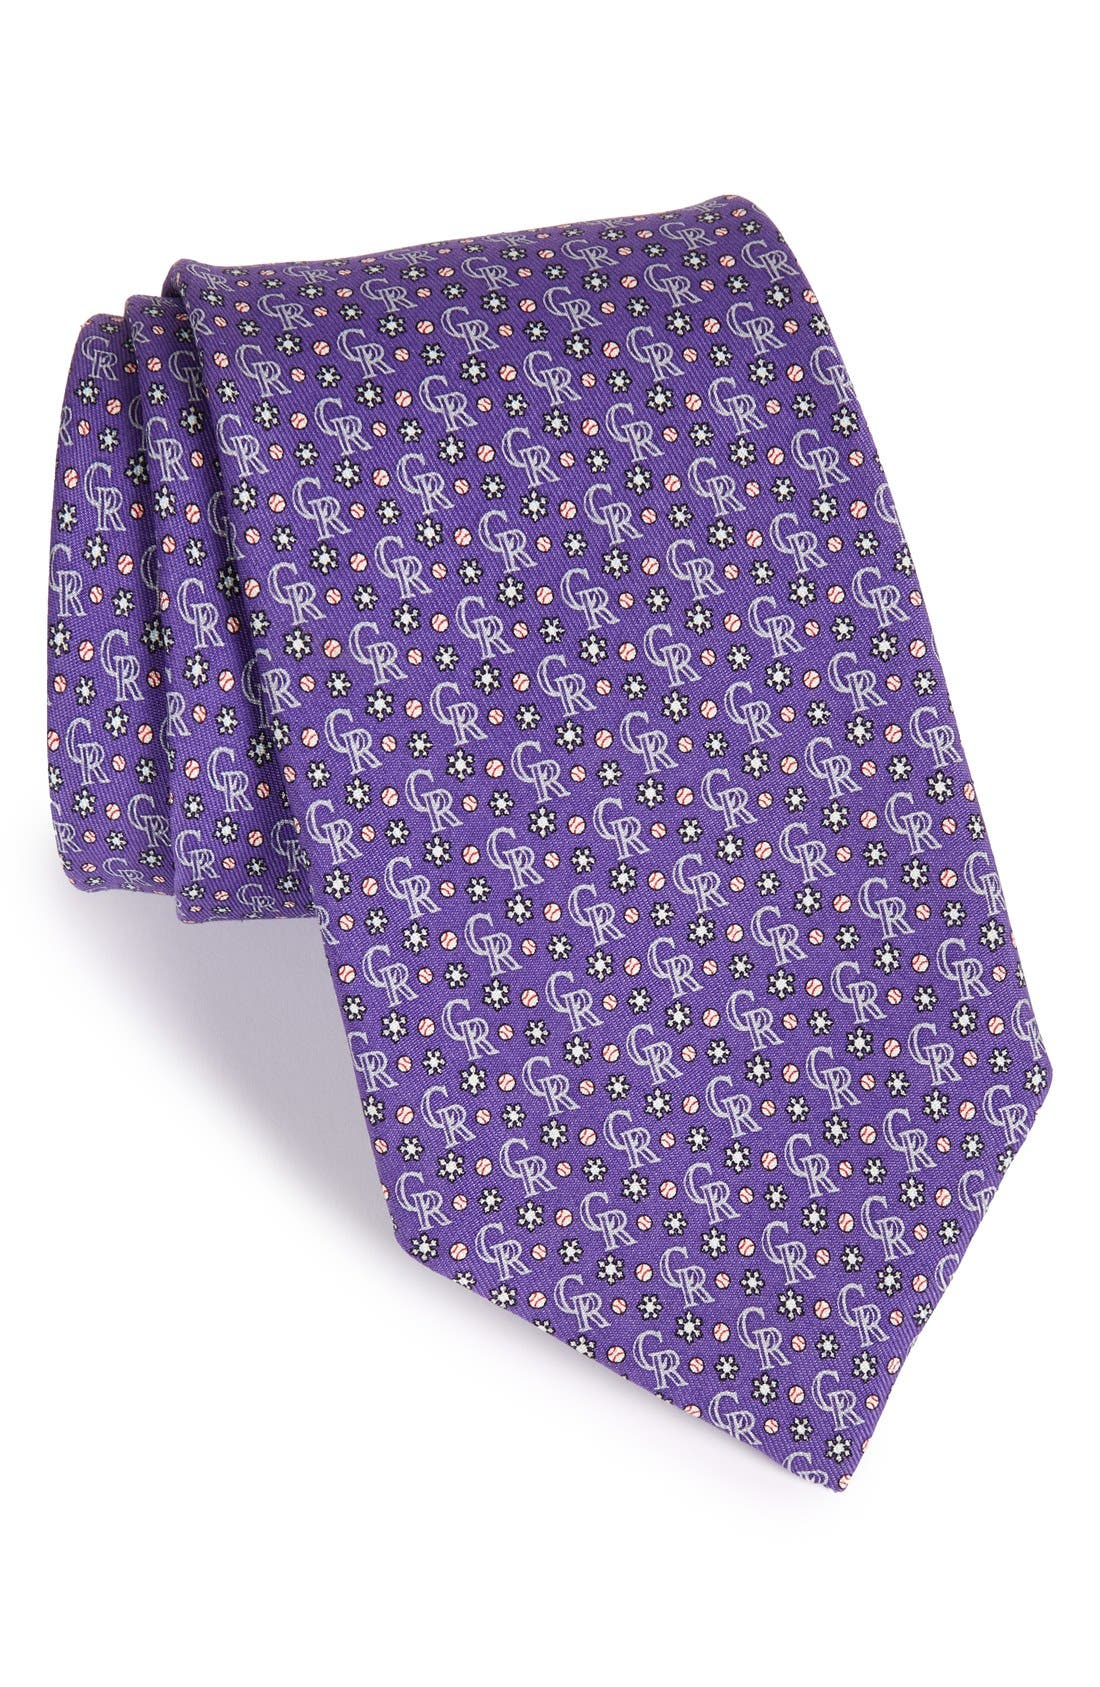 Alternate Image 1 Selected - Vineyard Vines 'Colorado Rockies' Woven Silk Tie